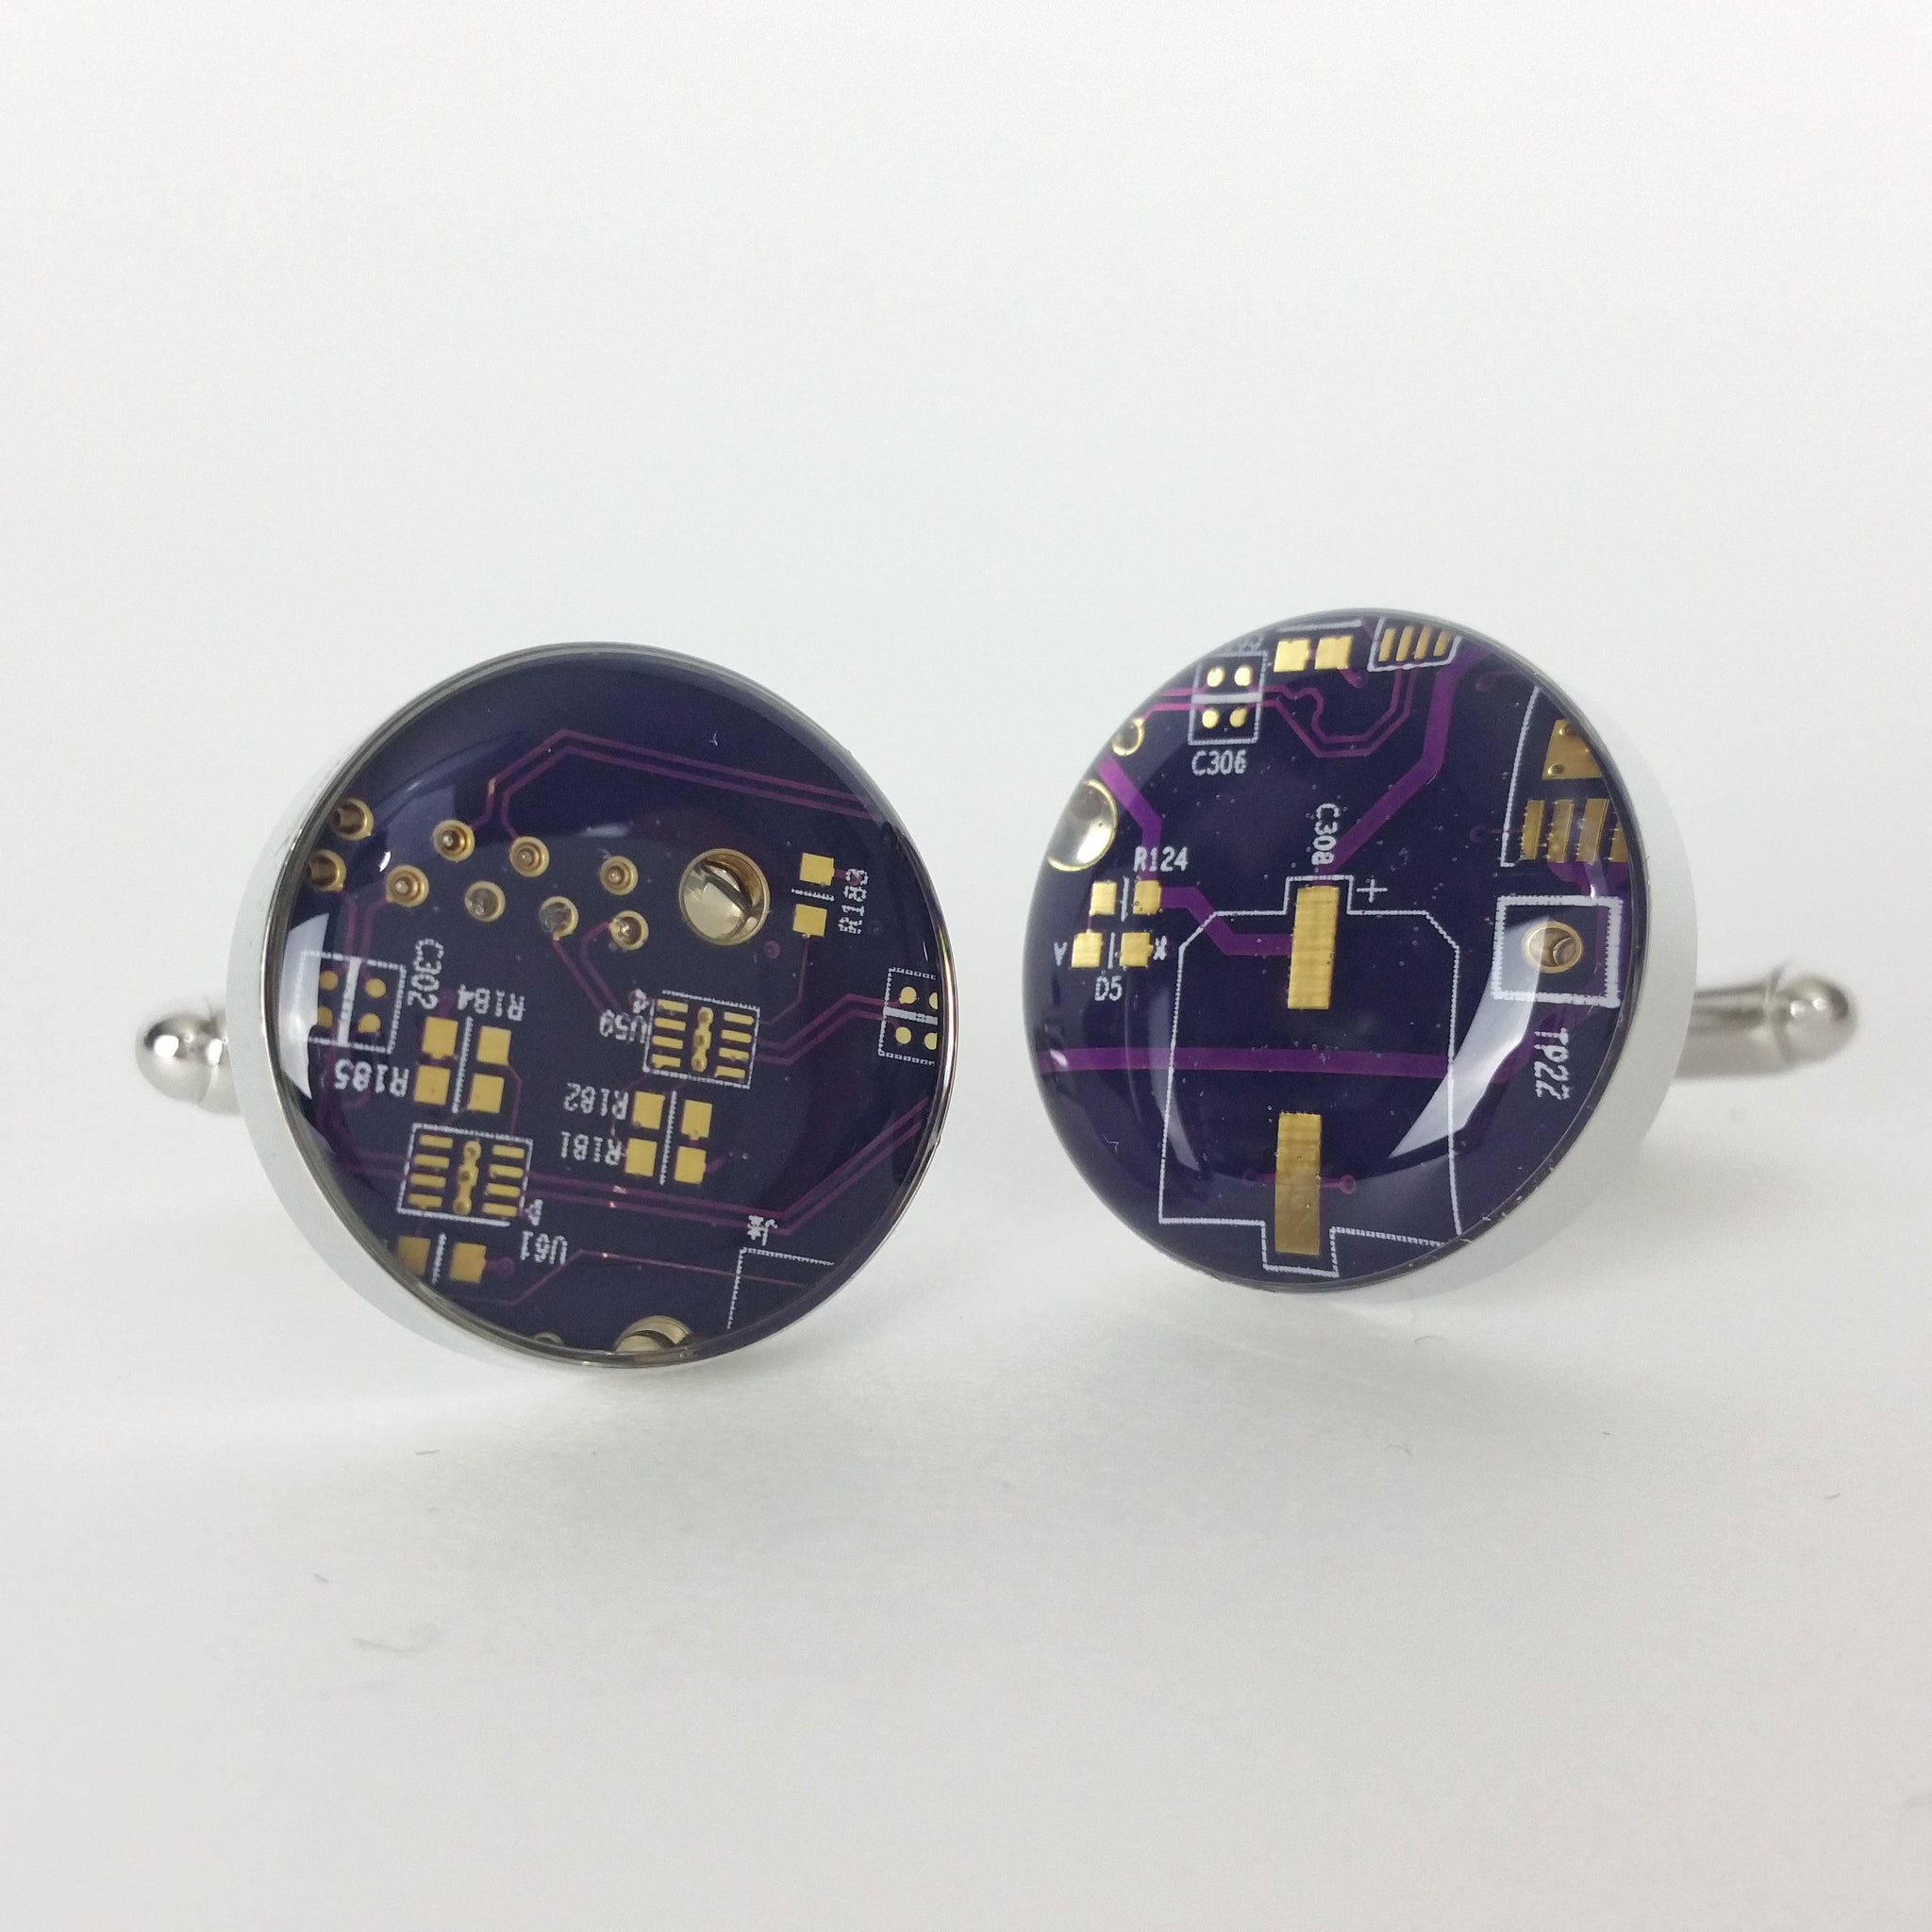 Techwearspurple And Gold Circuit Board Cufflinks Quartz Clock Purple Real 100 Recycled By